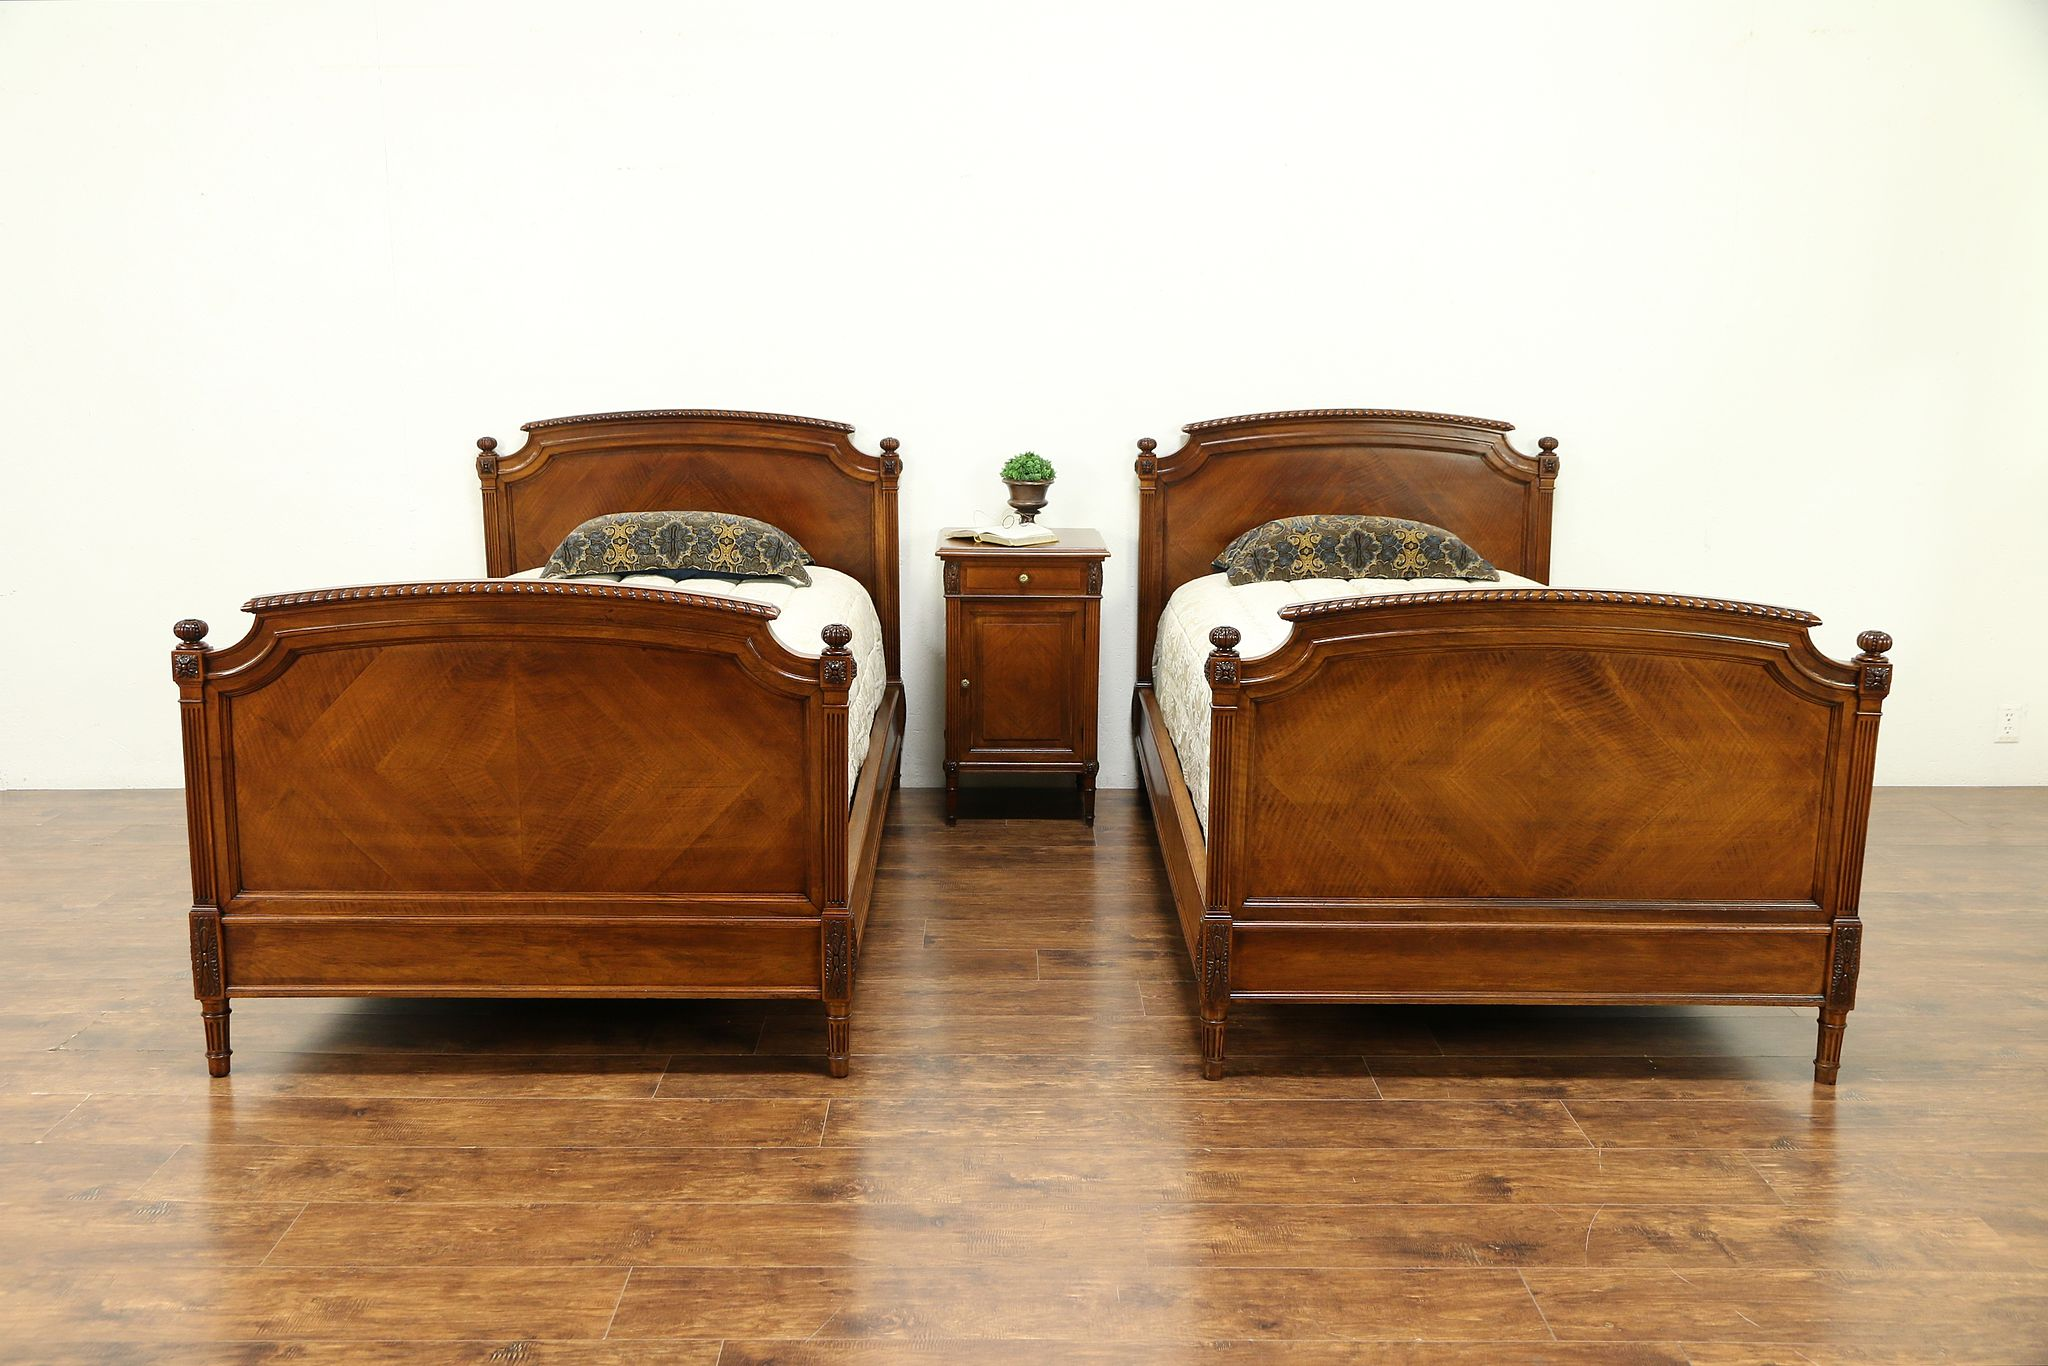 Sold Walnut Antique Louis Xvi Style Bedroom Set 2 Twin Beds Nightstand 30312 Harp Gallery Antiques Furniture